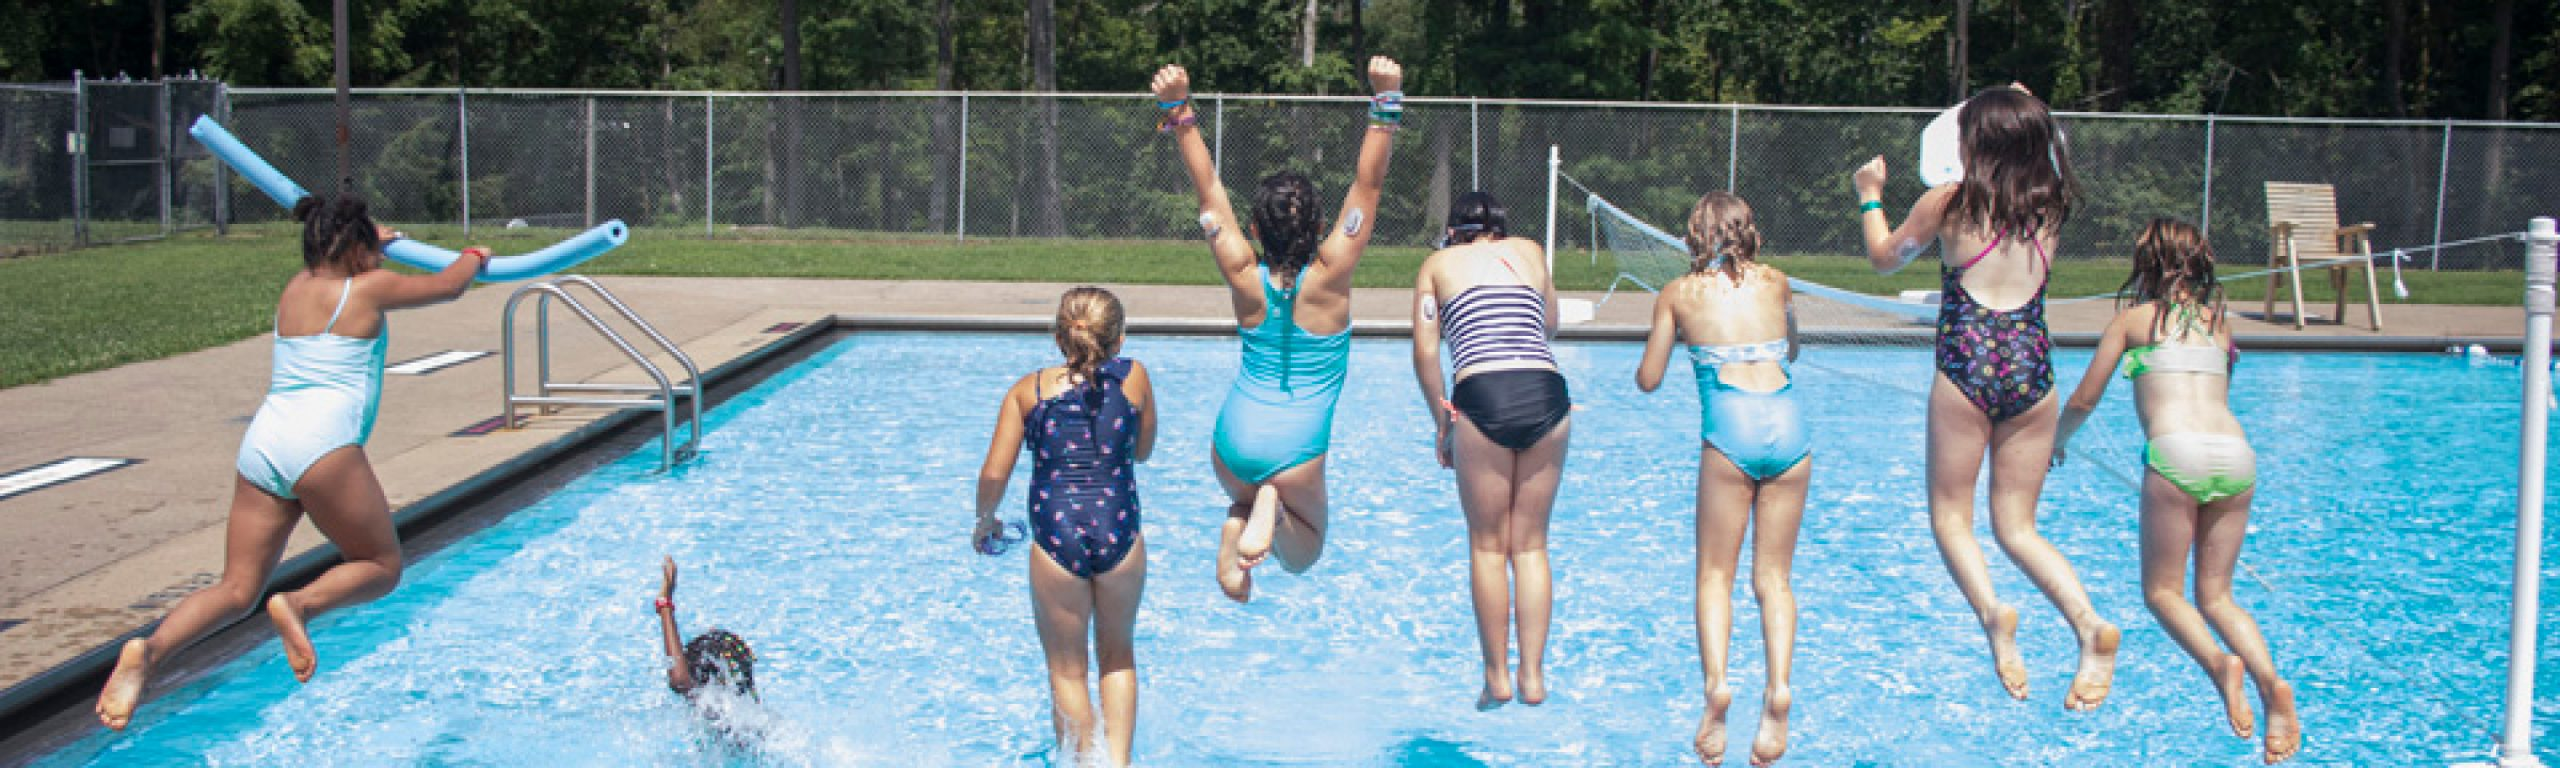 Campers jumping into a pool together